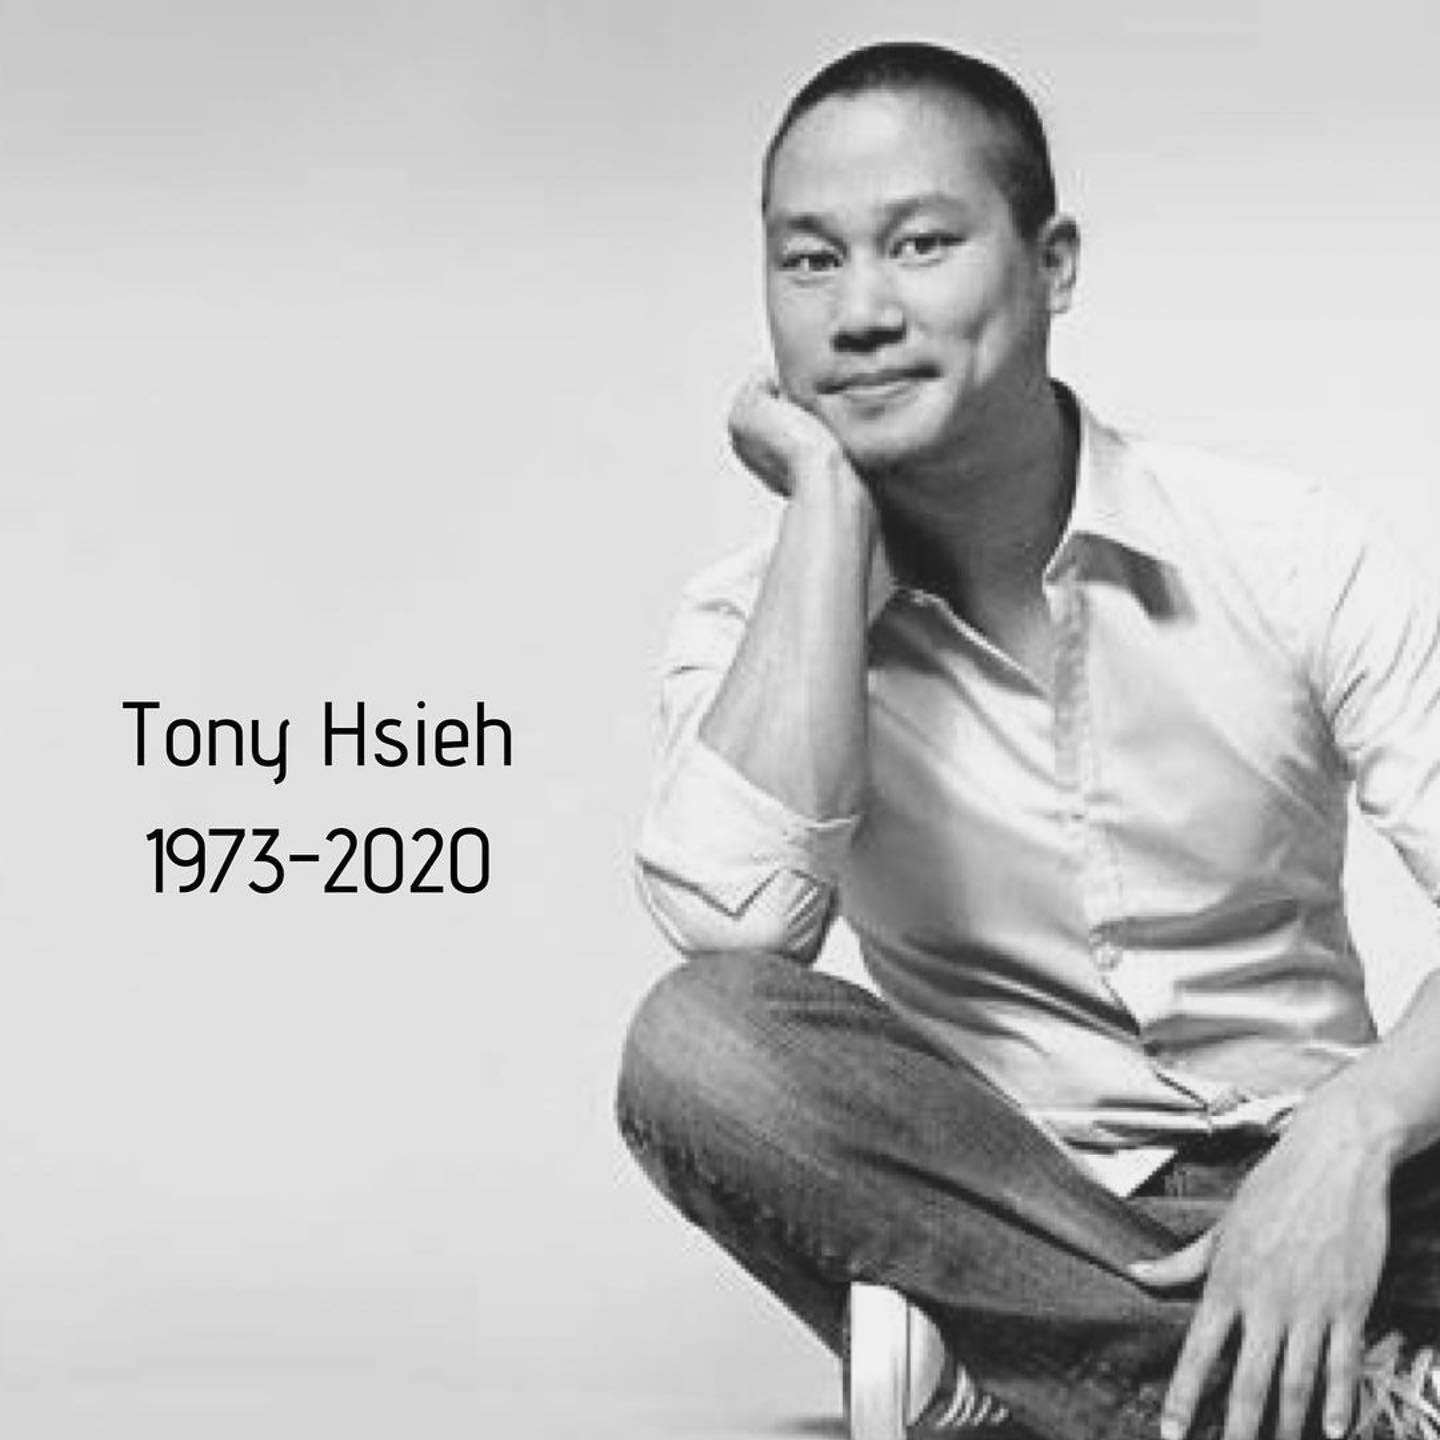 A very sad, tragic loss.   #Repost @downtowntony ・・・ Today we are saddened to share the news of Tony Hsieh's passing.   We can only imagine what he would say if he were here to announce this to you all, but we envision his message would resonate that:  Energy cannot be created or destroyed.   Energy is the ability to bring about change.   Tony has given energy to so many people.   For those of you who knew him well, you knew of his childlike wonder; his love for experiences and relationships over material things.   Let us all feel Tony's energy and use it to deliver happiness.  Posted by Michelle ❤️